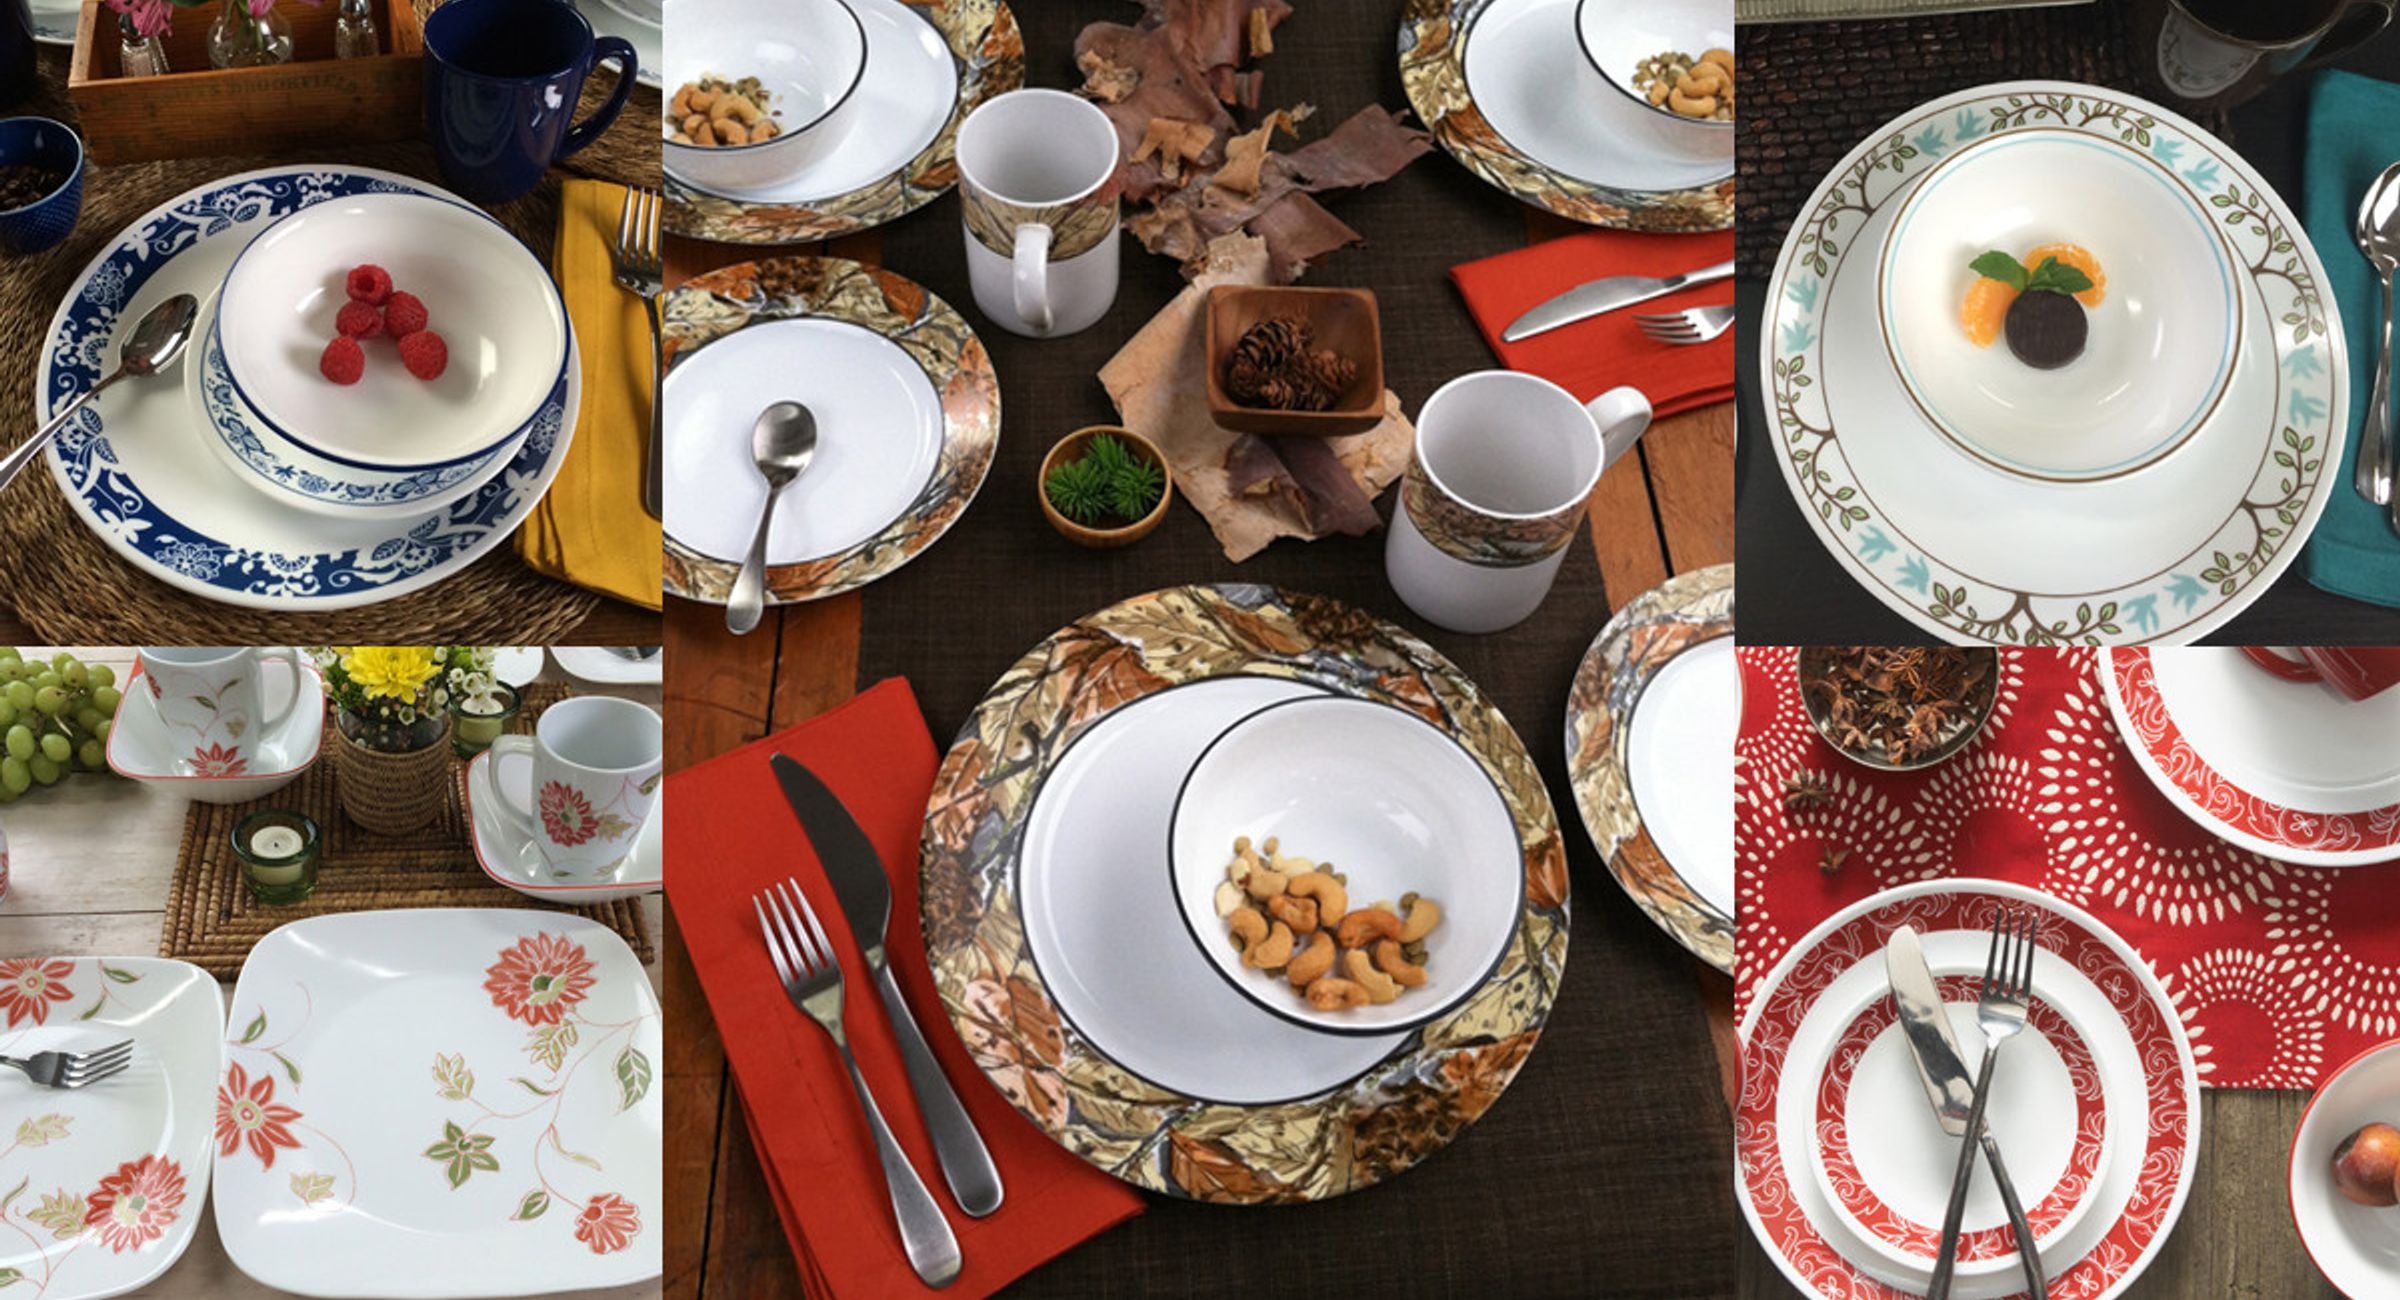 Corelle Dinnerware at the Cabin: Which Style Are You?